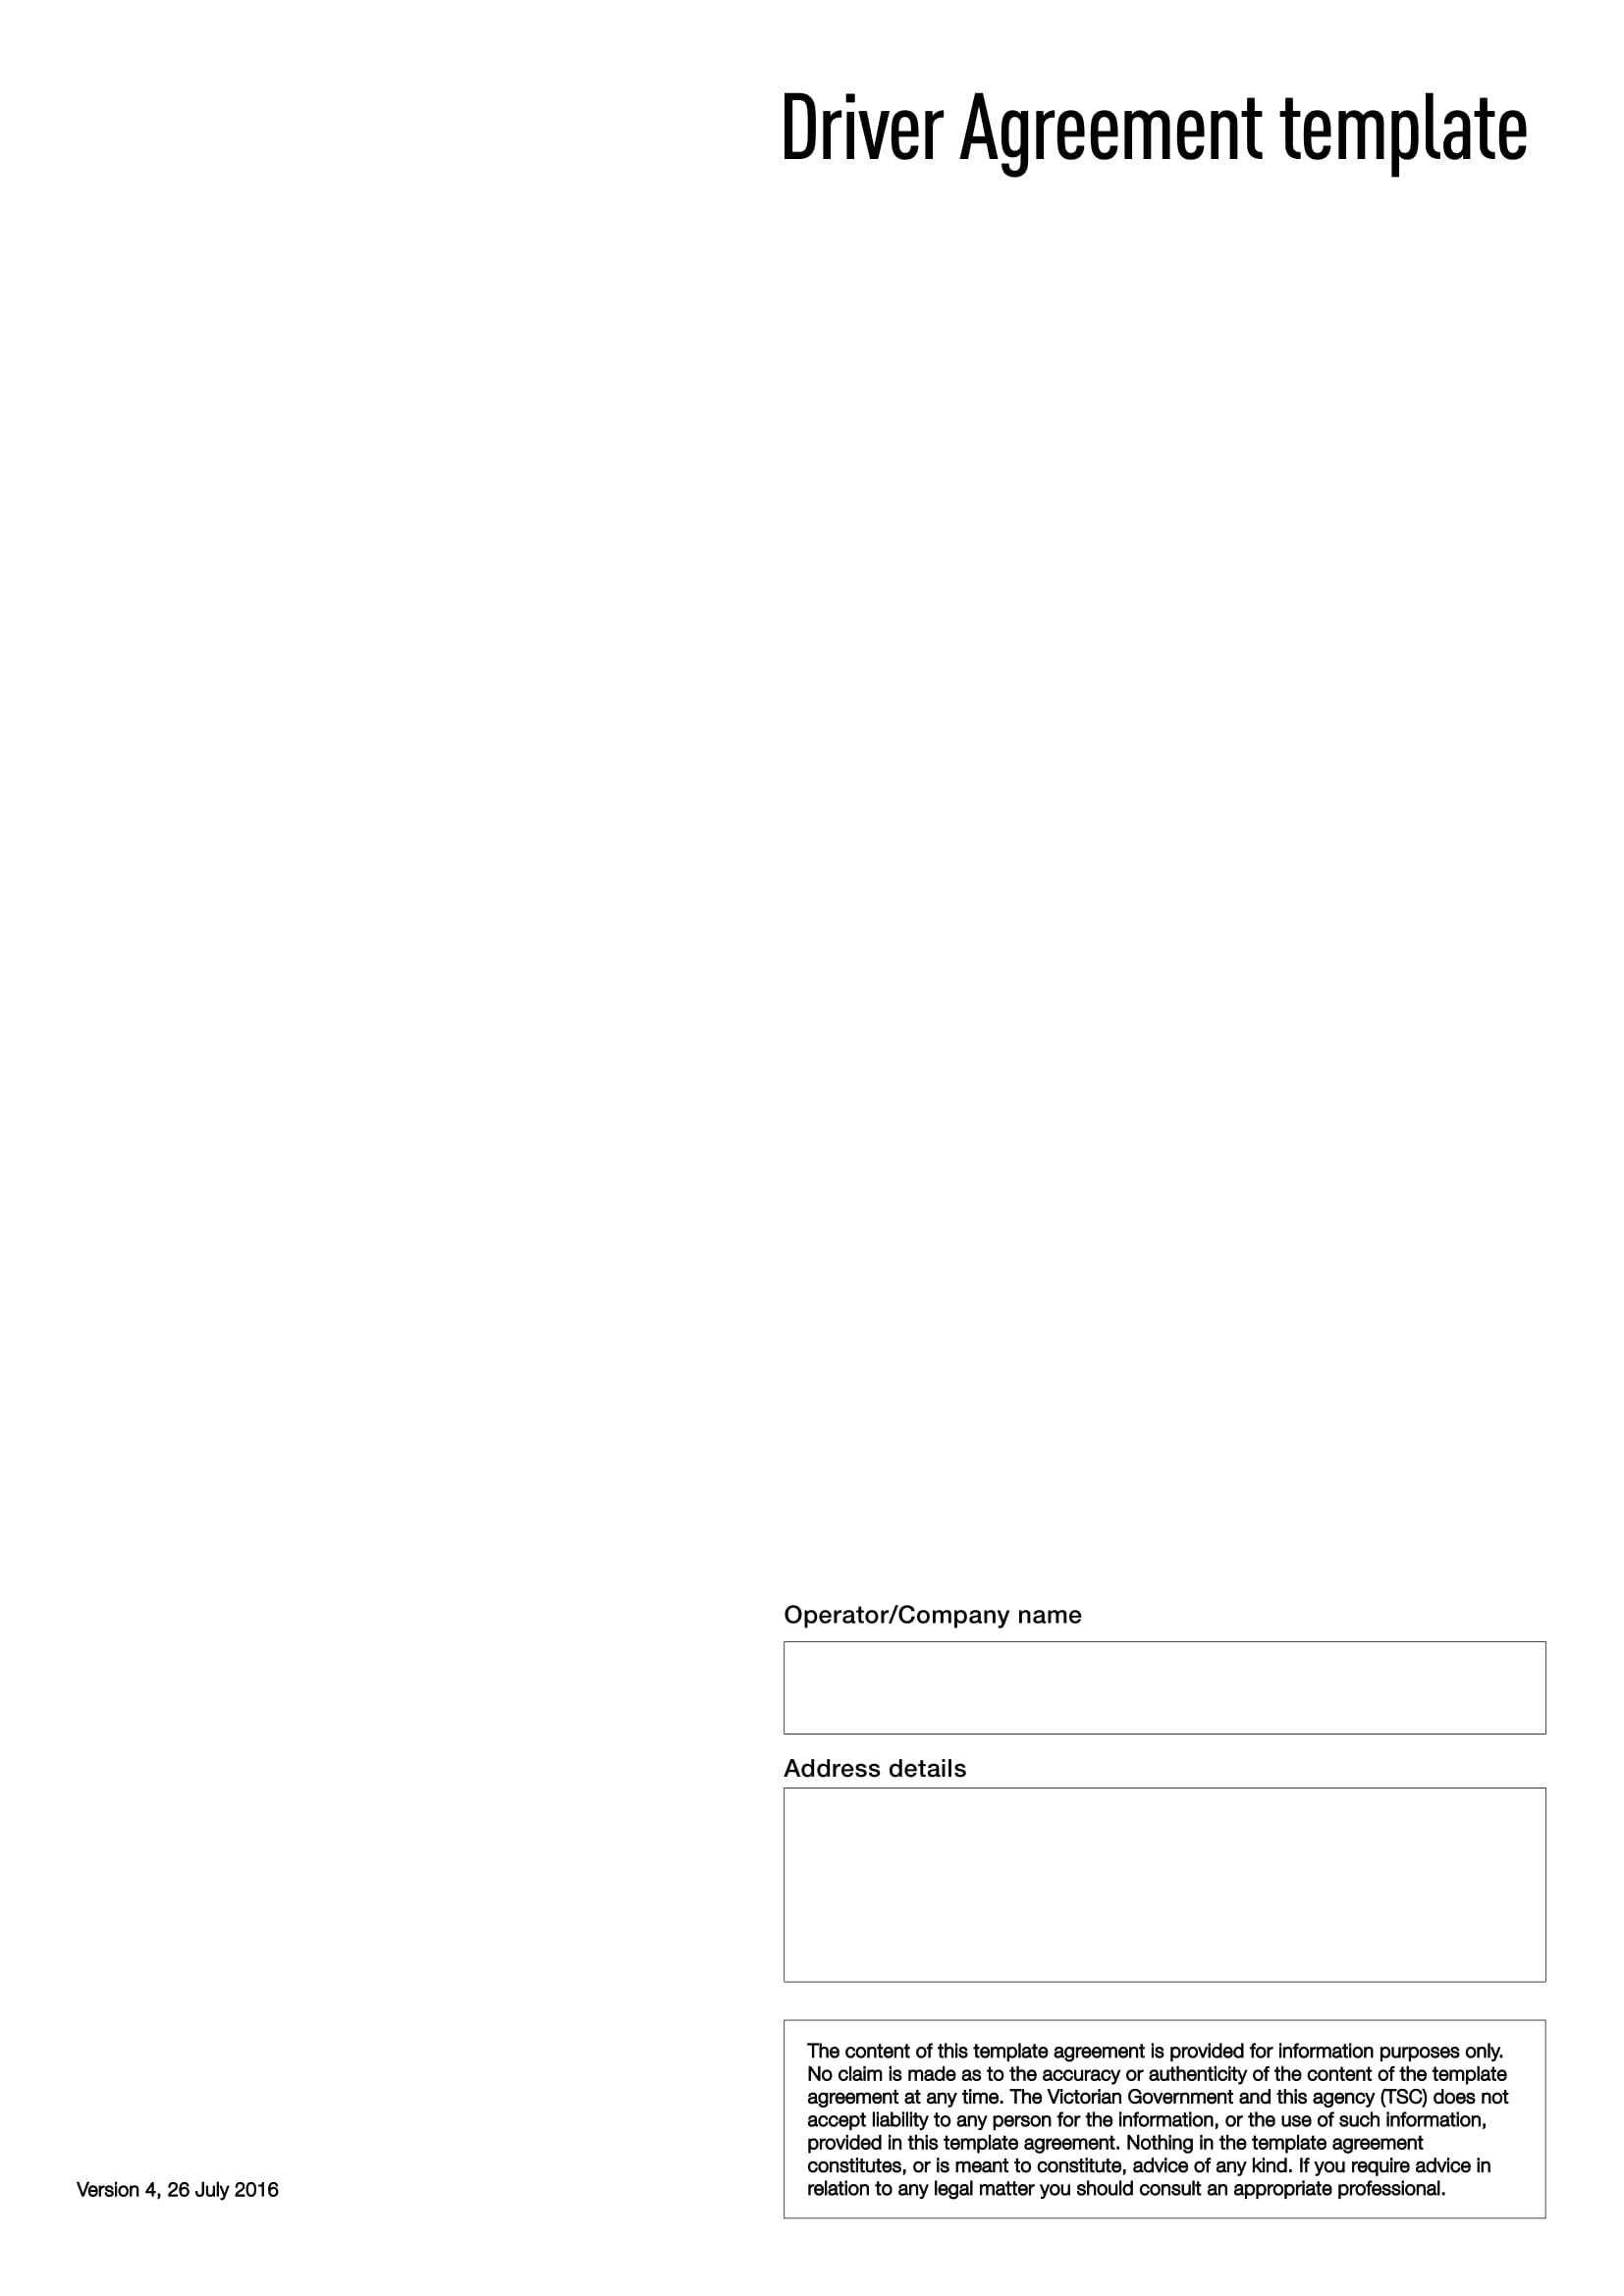 driver agreement template 01